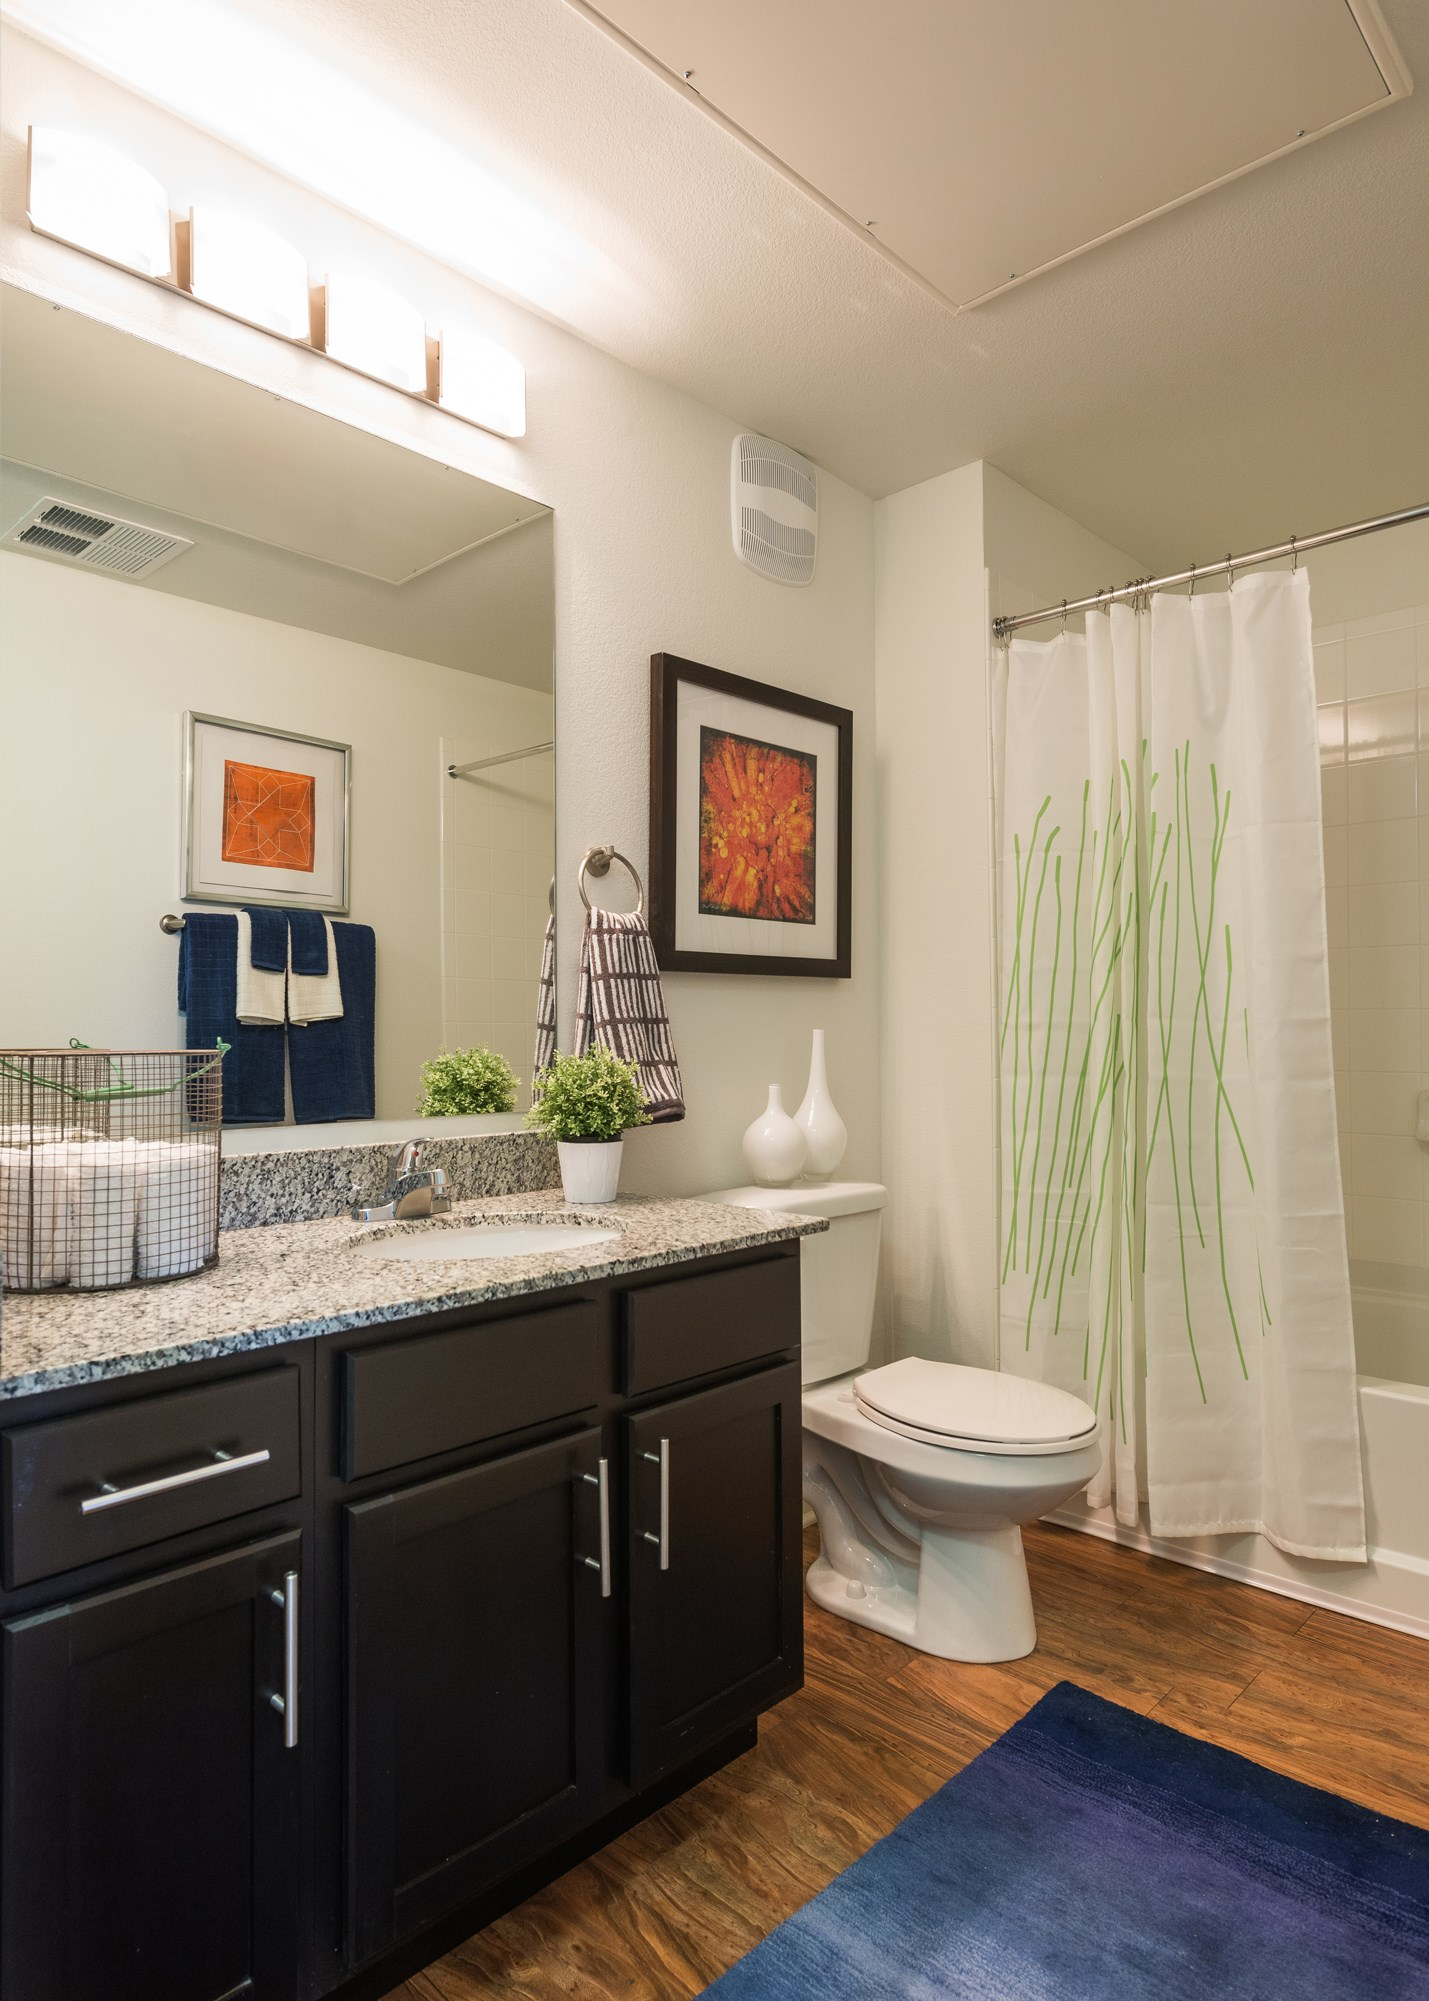 Bathroom at Arterra Place Apartments in Aurora, CO